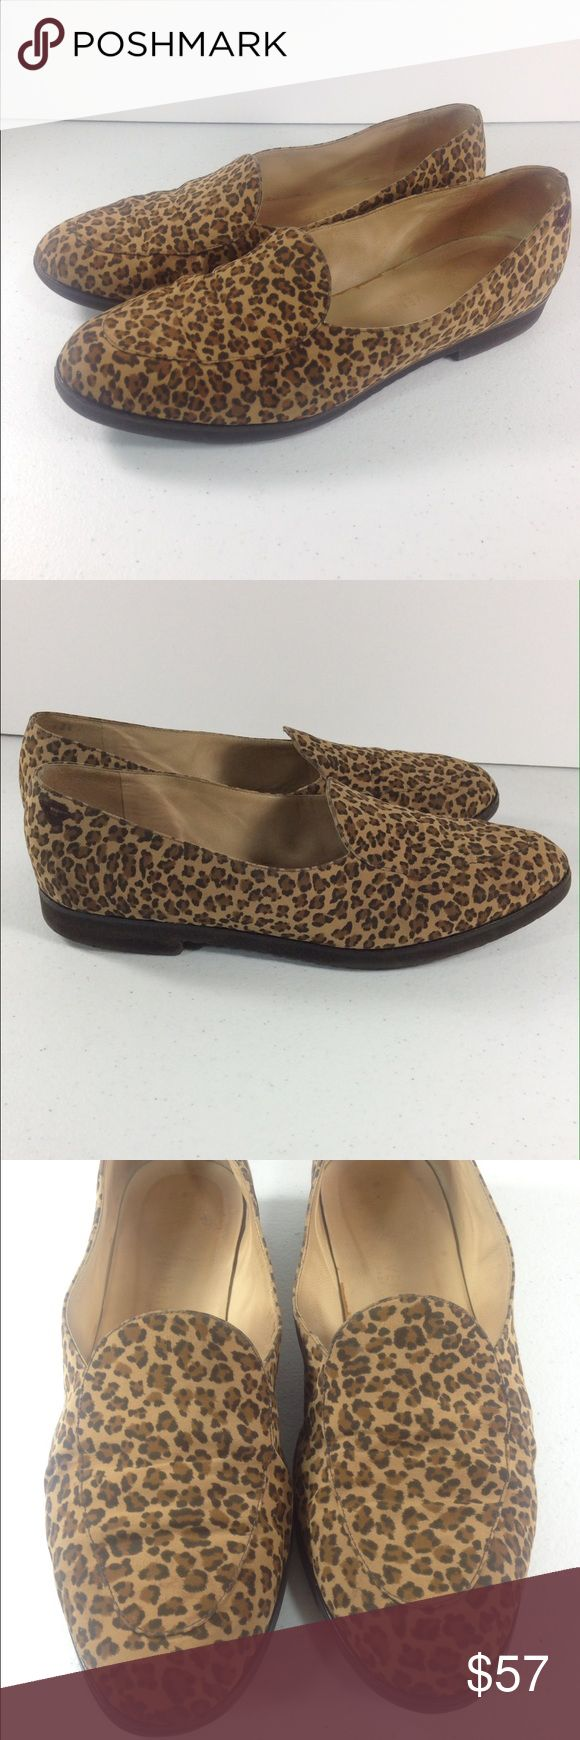 BOTTEGA Veneta Leopard Loafers Size 8.5 38.5 Up for sale is this sassy pair of Bottega Veneta Animal Print Driving Loafers! Leopard is the new neutral!  Womens Size US 8.5 EUR 38.5  CONDITION: Good Condition! Overall signs of wear. Bottega Veneta Shoes Flats & Loafers